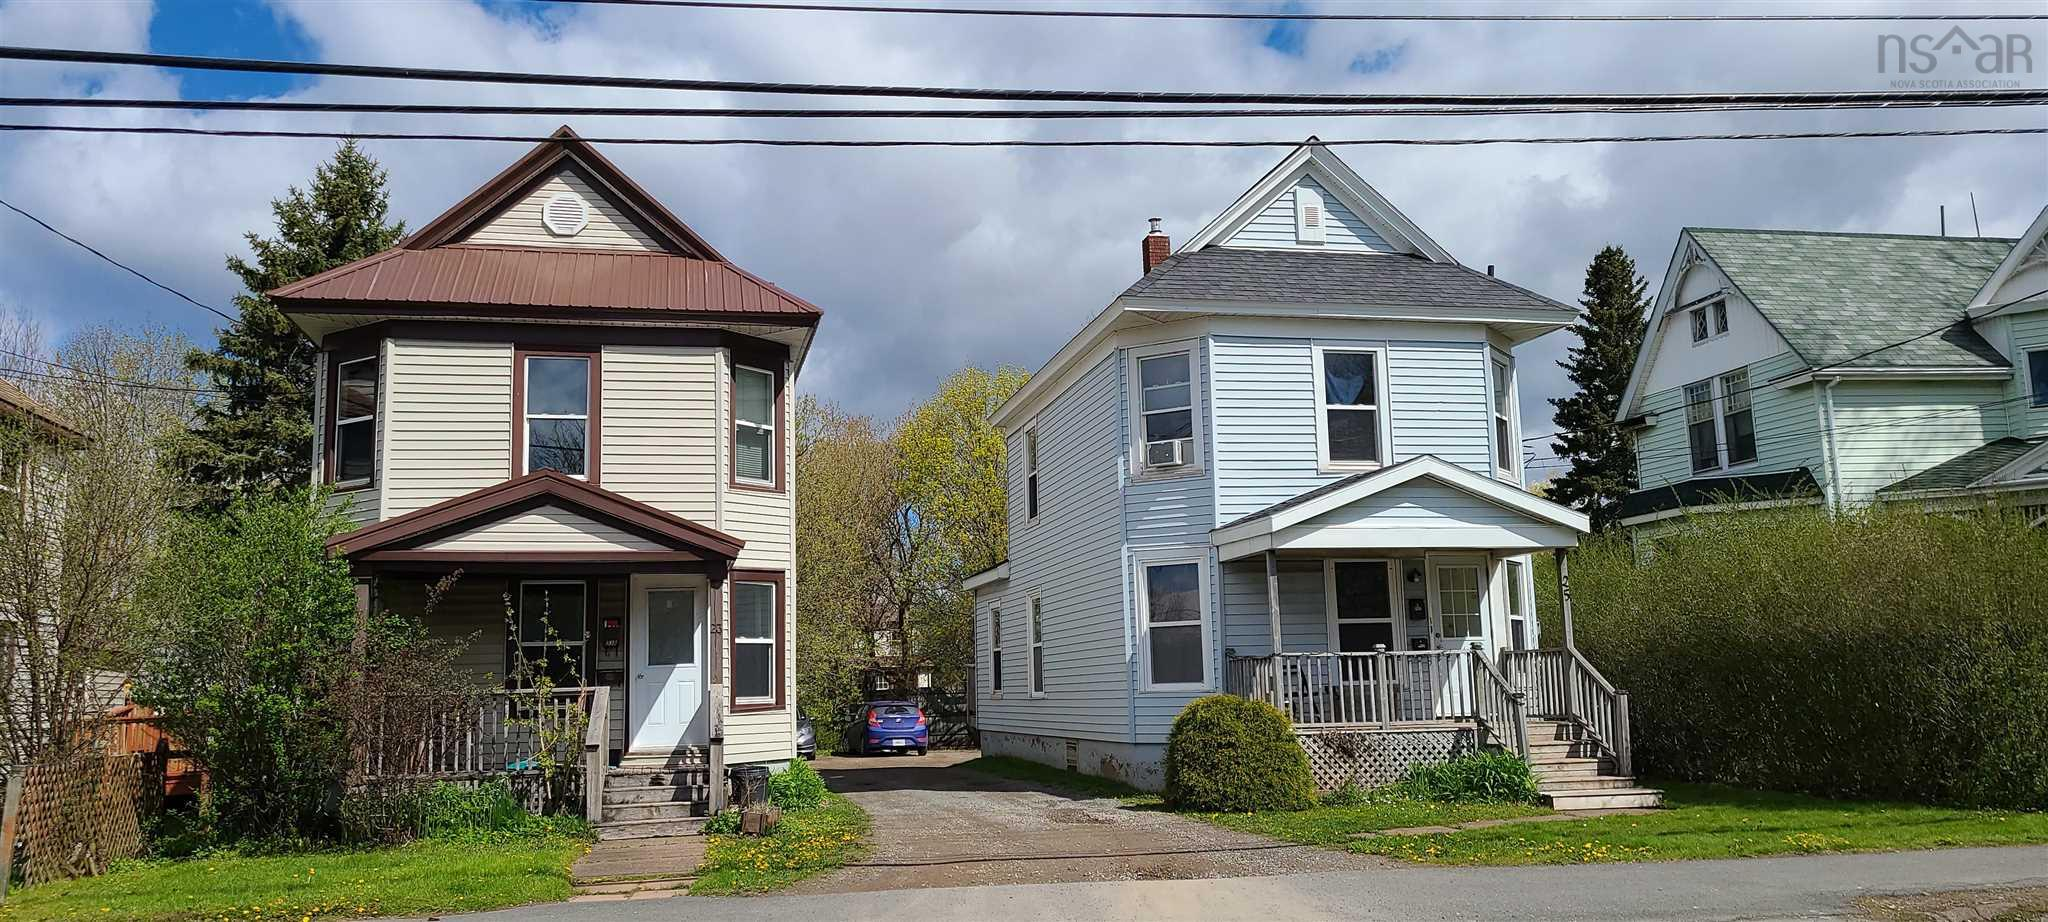 25 COLLEGE Road, Bible Hill, NS B2N 2P2, ,Multi-unit,For Sale,25 COLLEGE Road,202111794